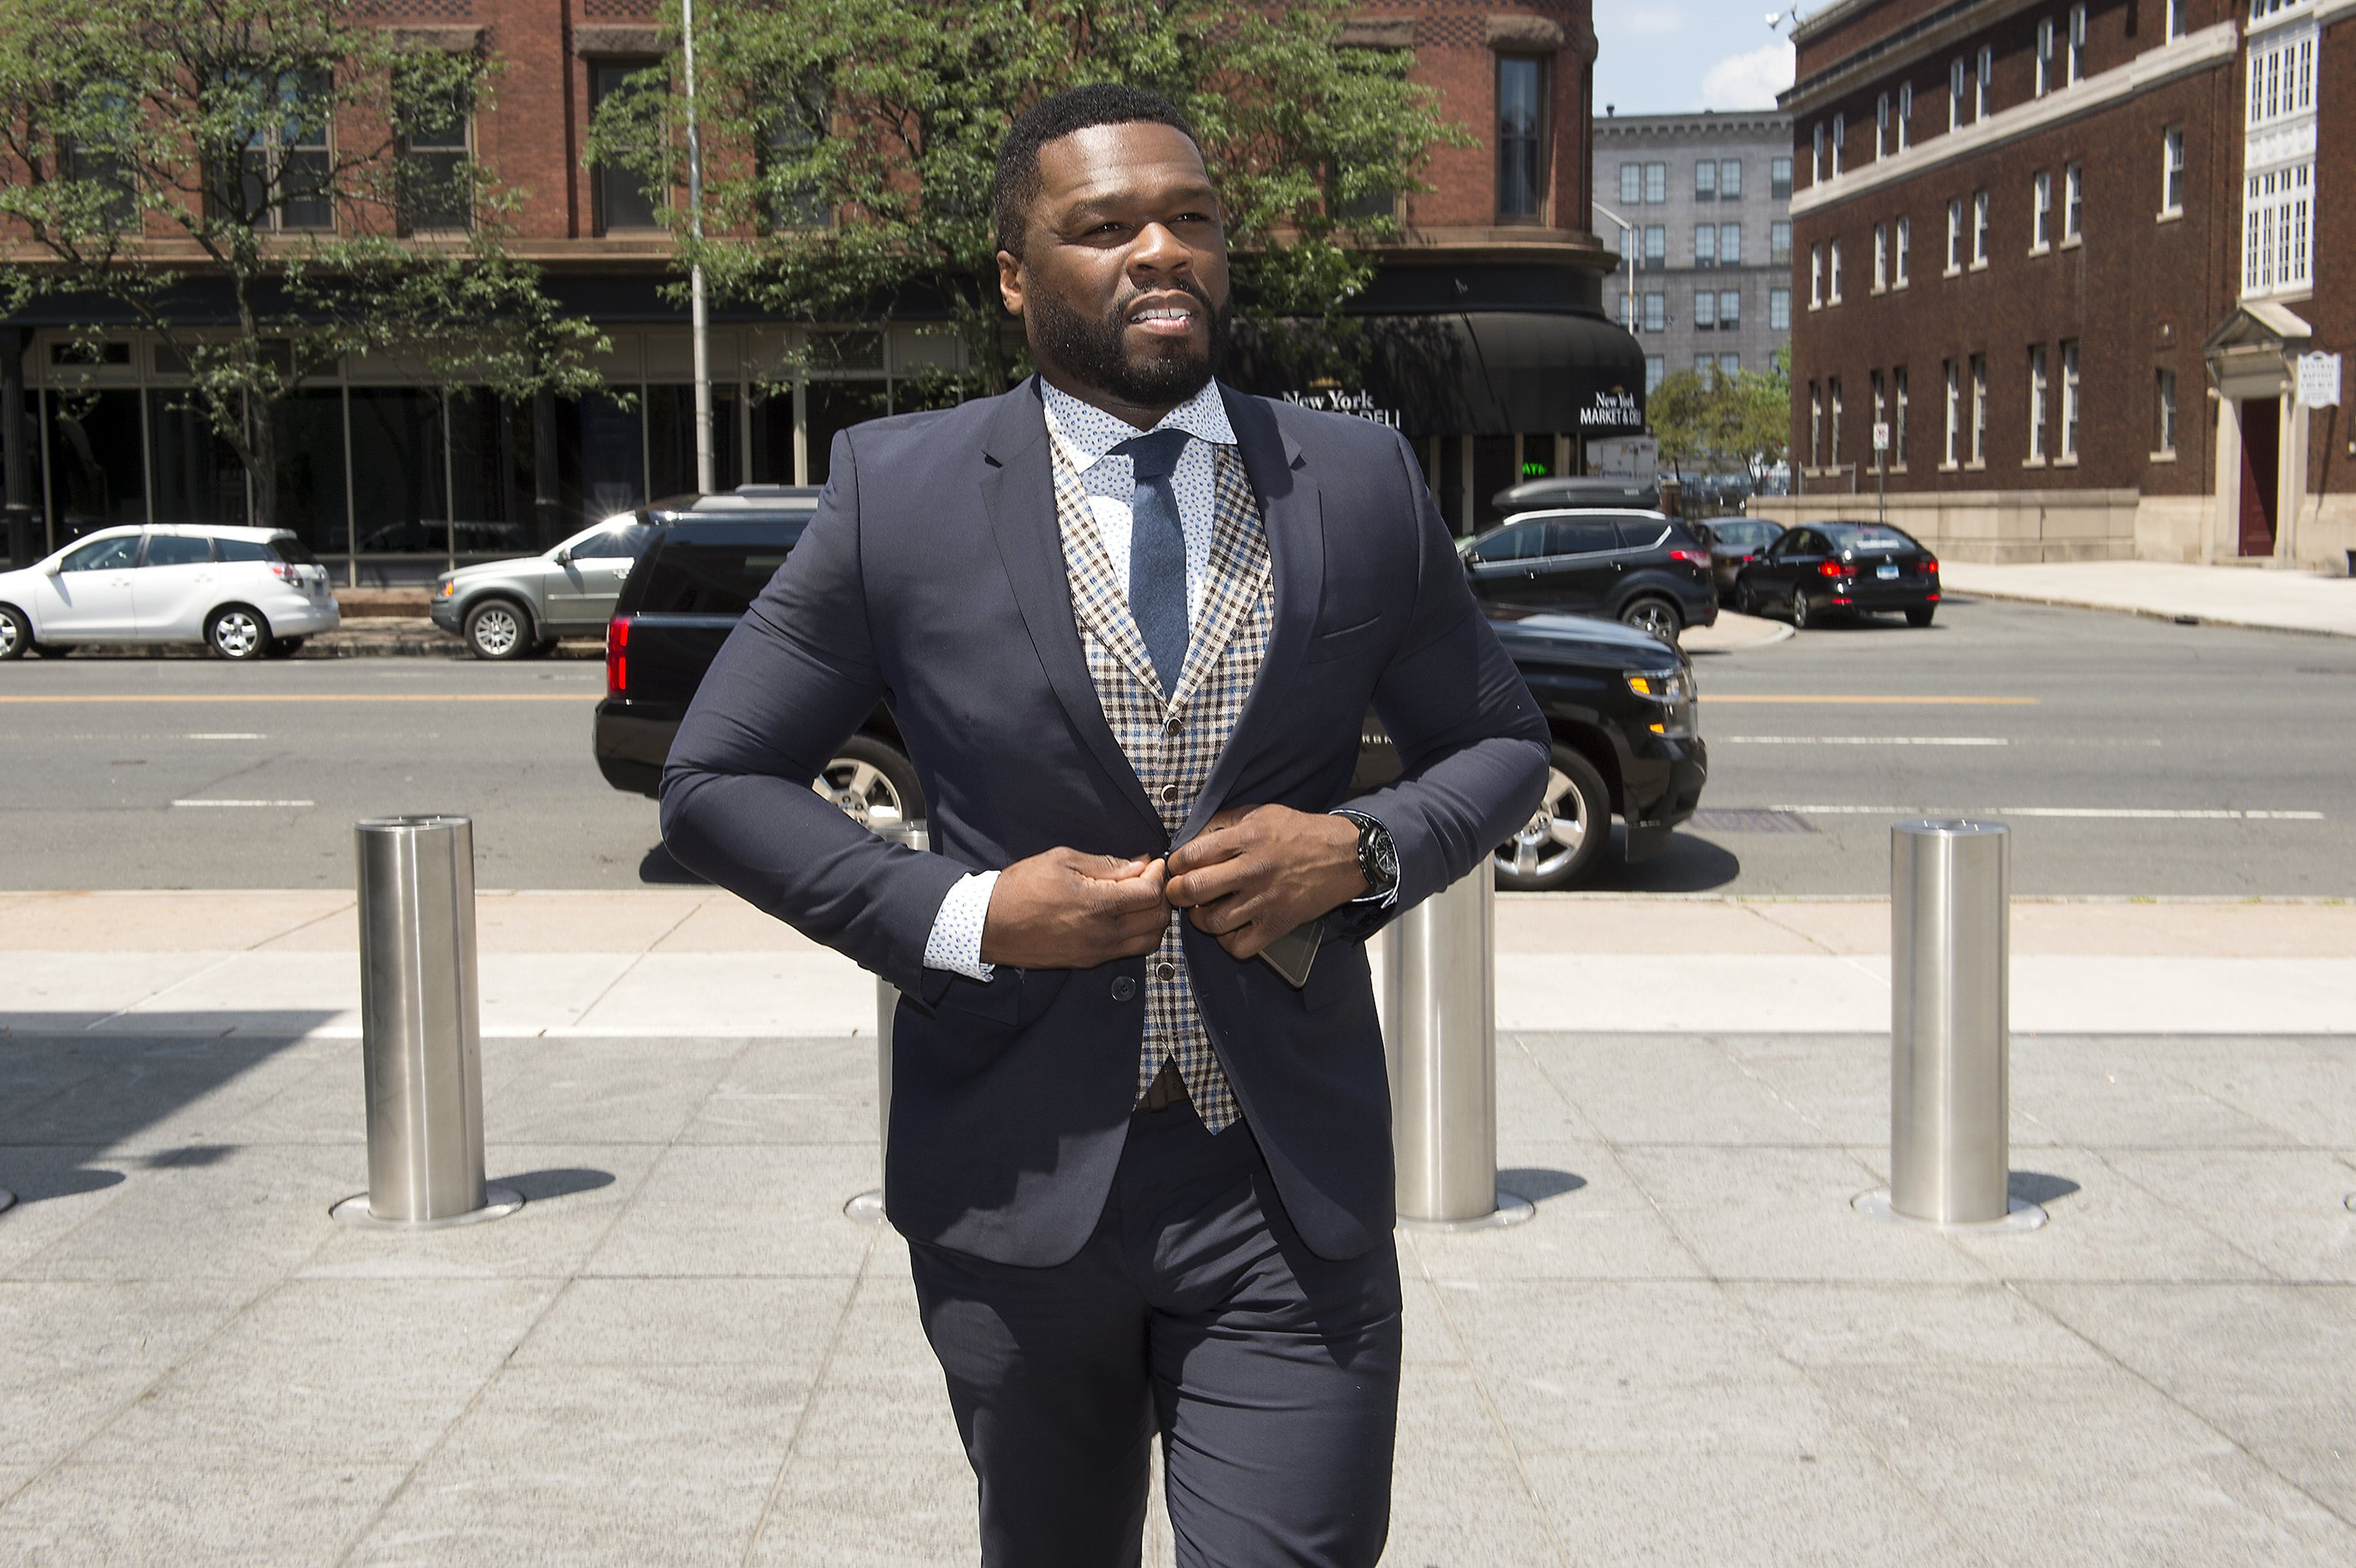 50 Cent wins big settlement that will help pay debts from bankruptcy